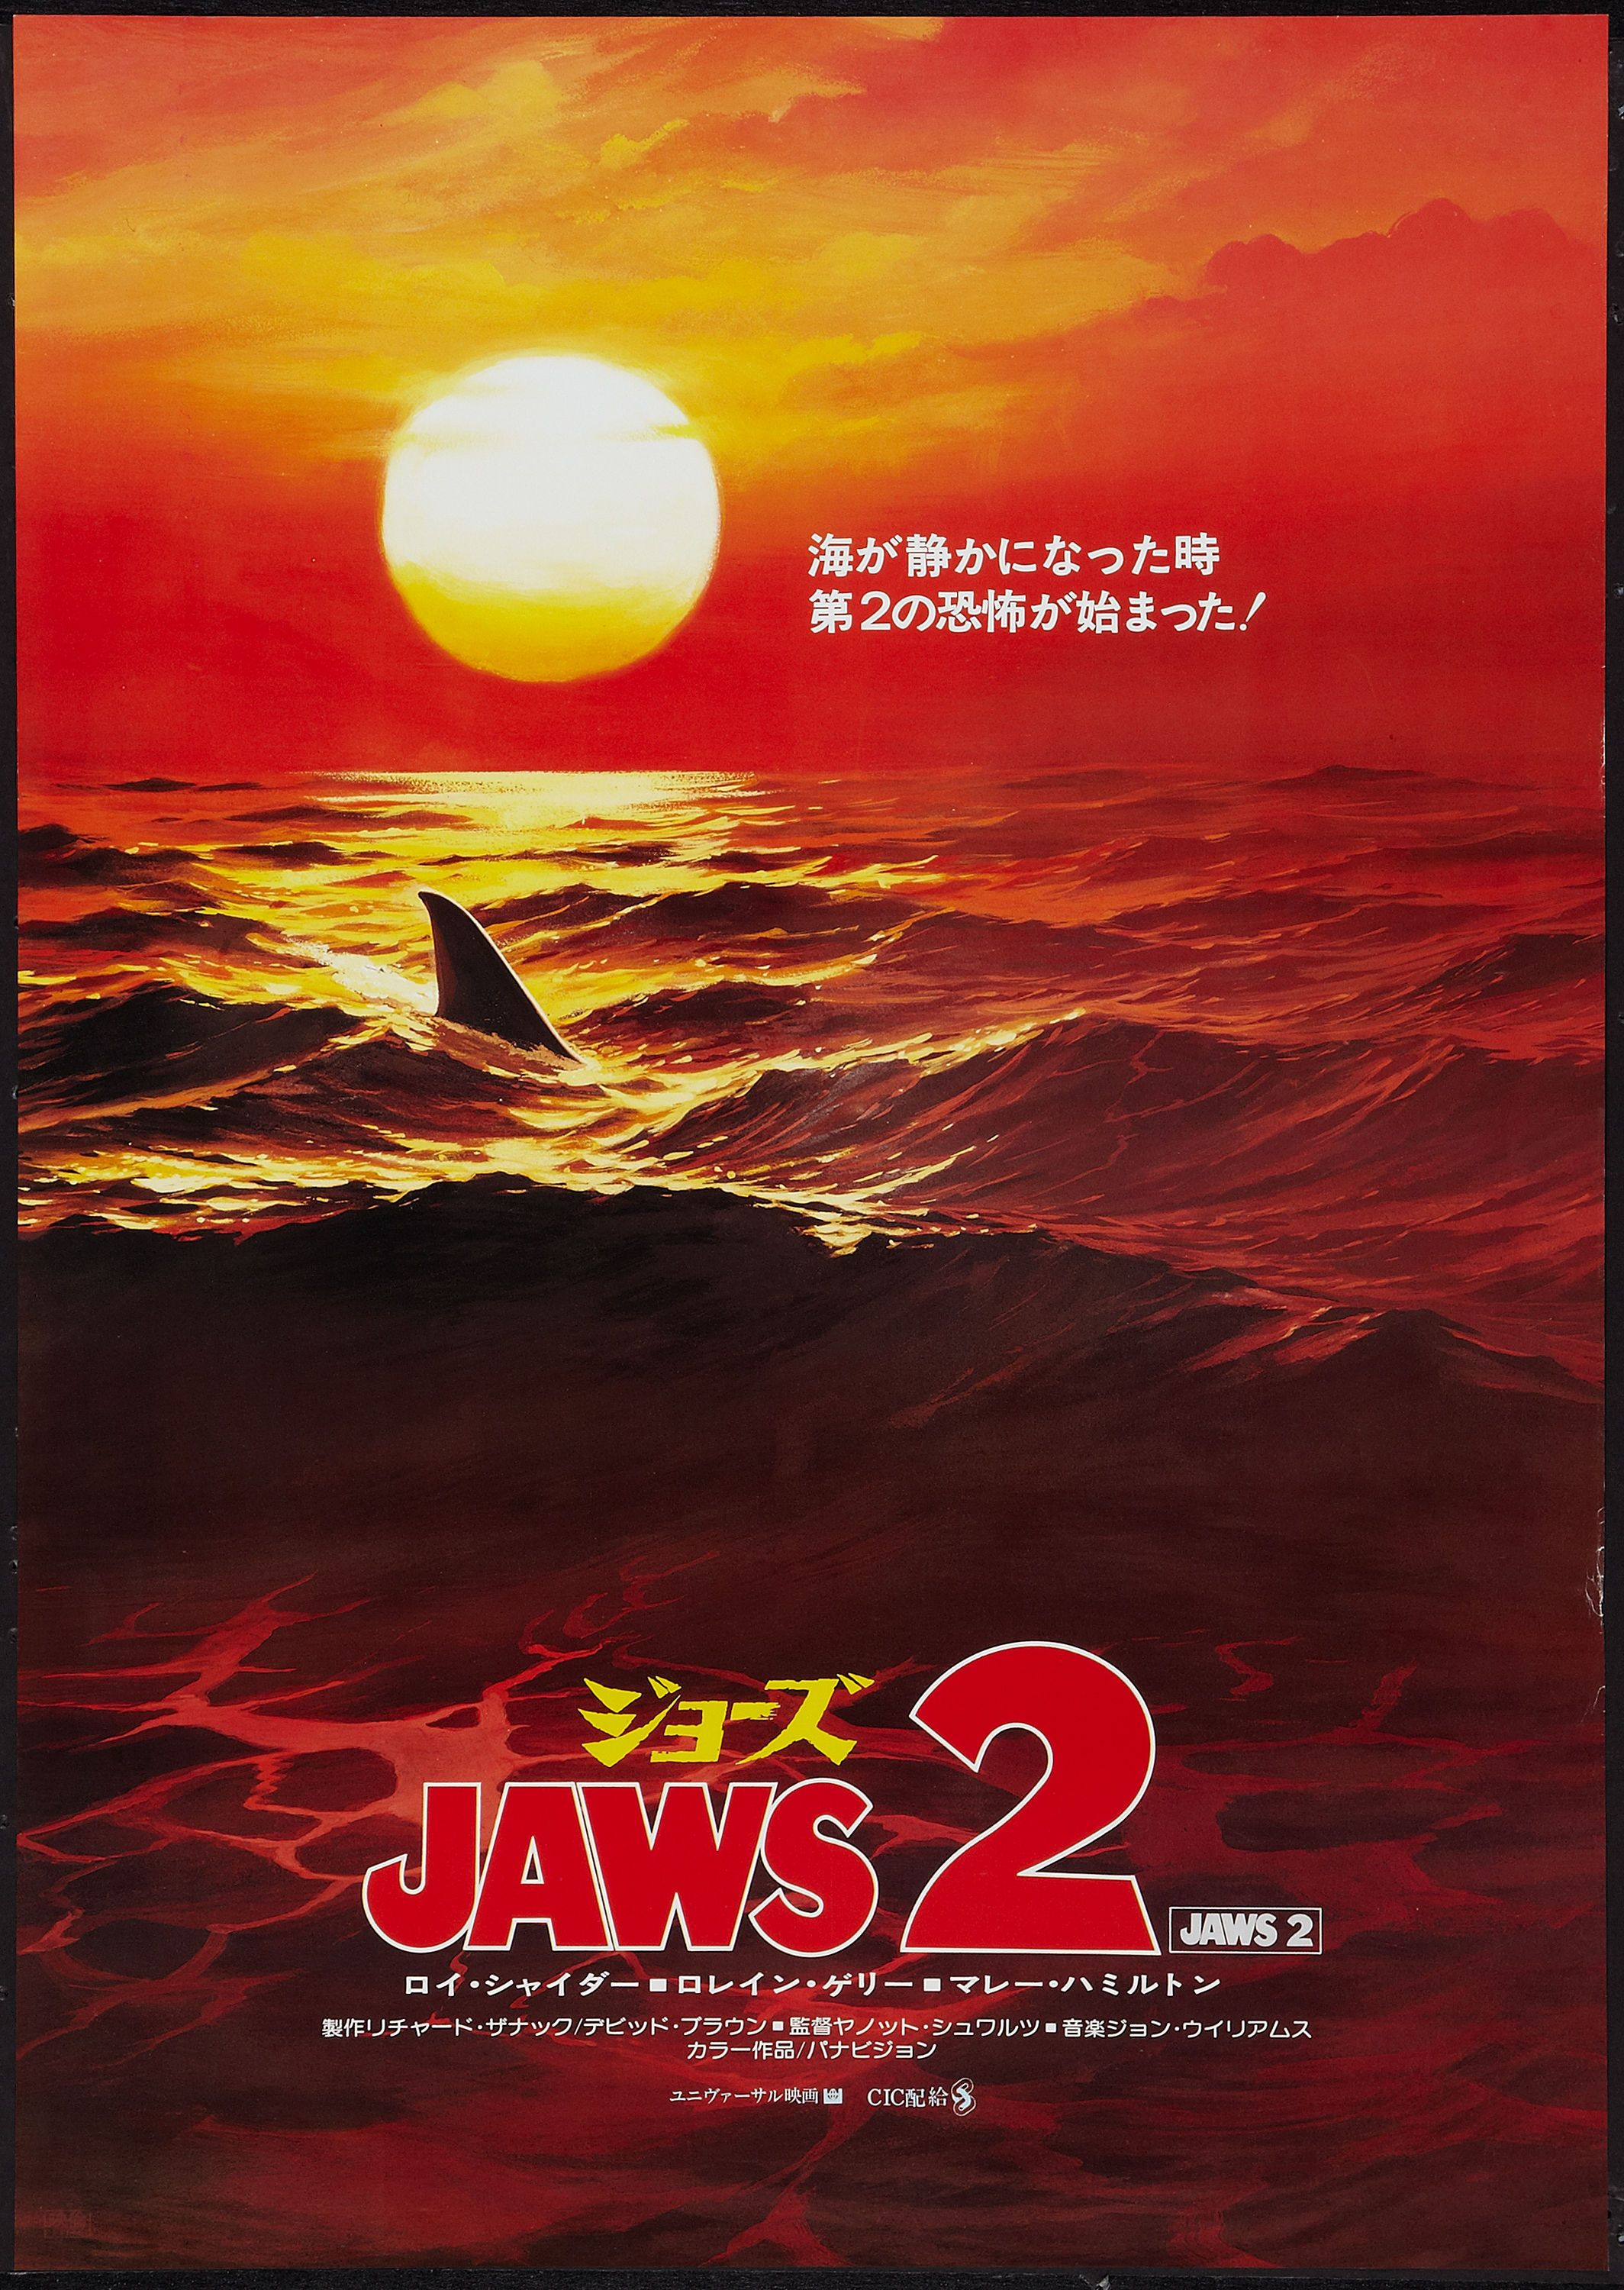 Jaws 2 (1978) - Japanese Poster